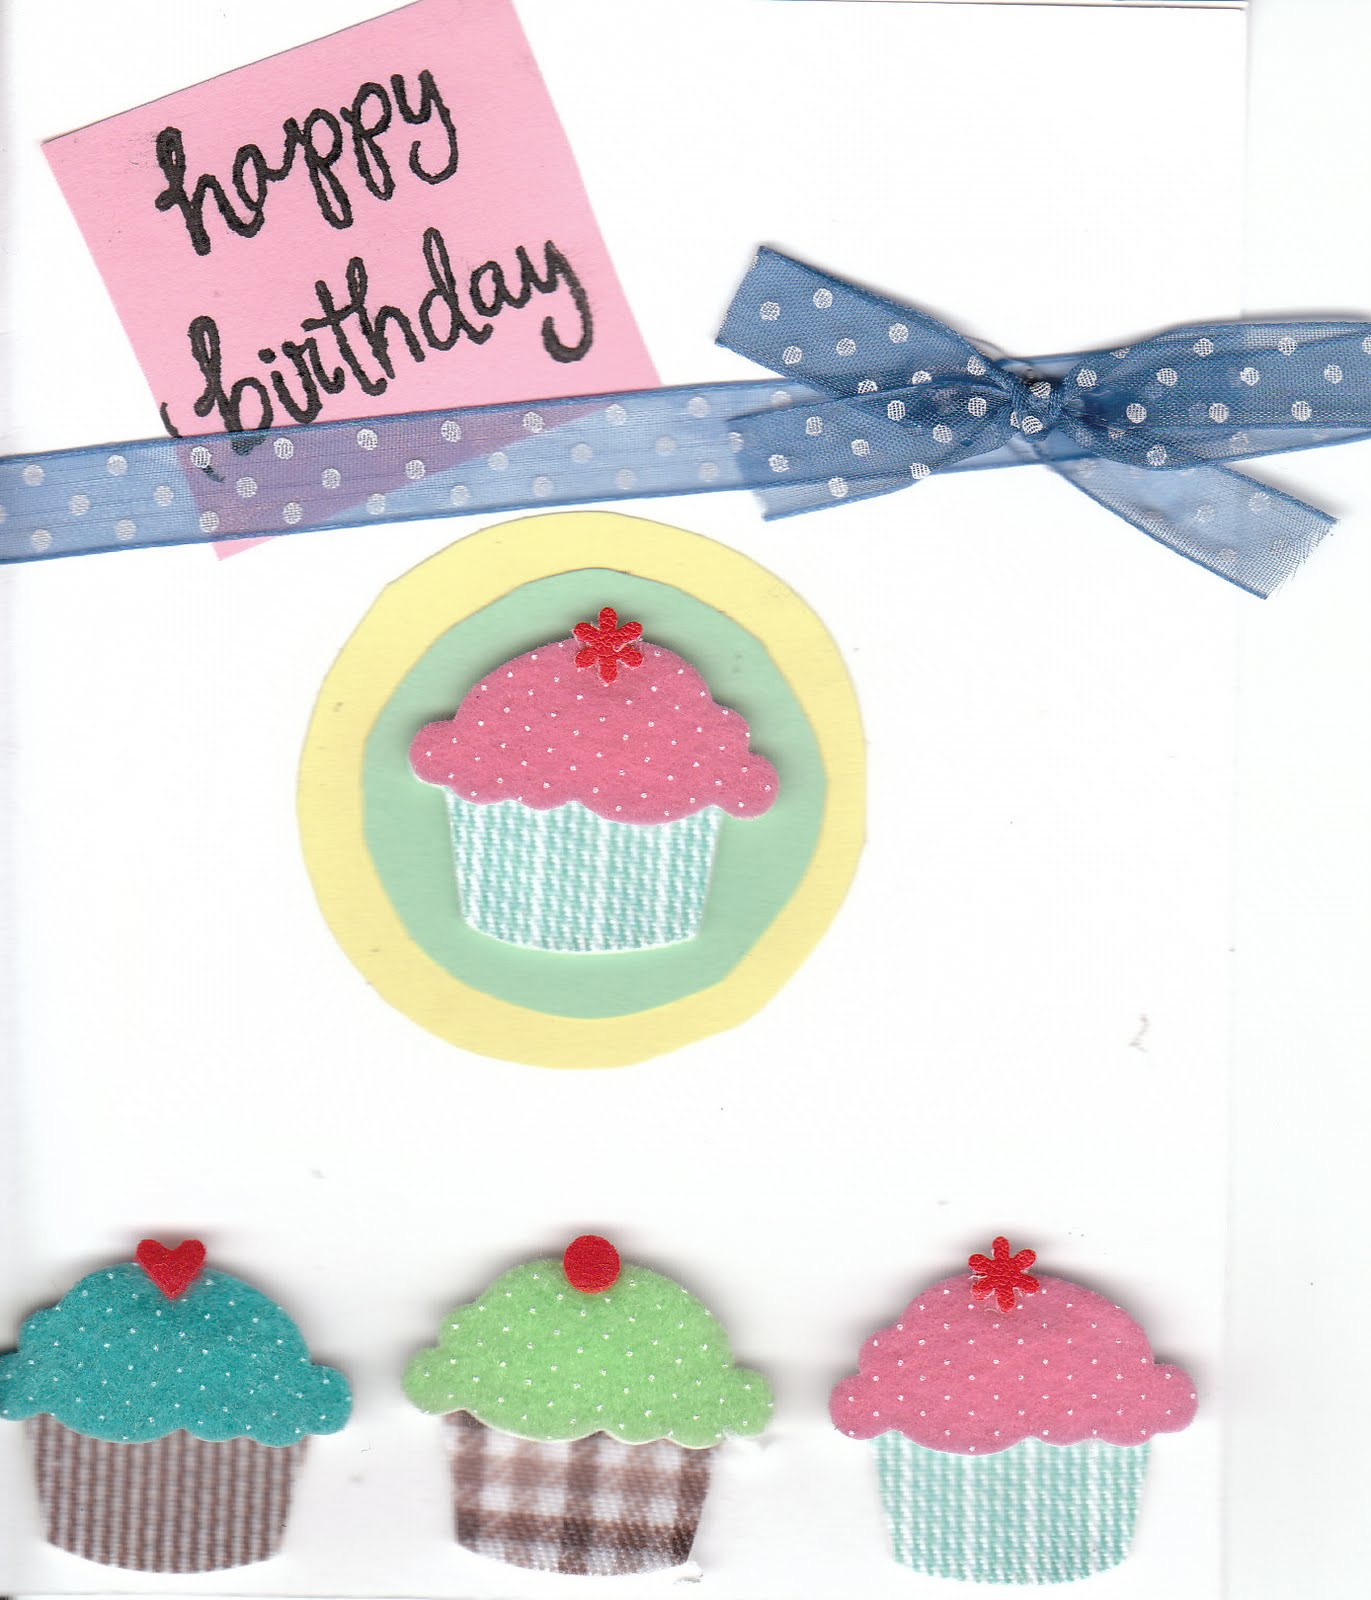 cup of delight monday's cup of creativity cupcake birthday card, Birthday card